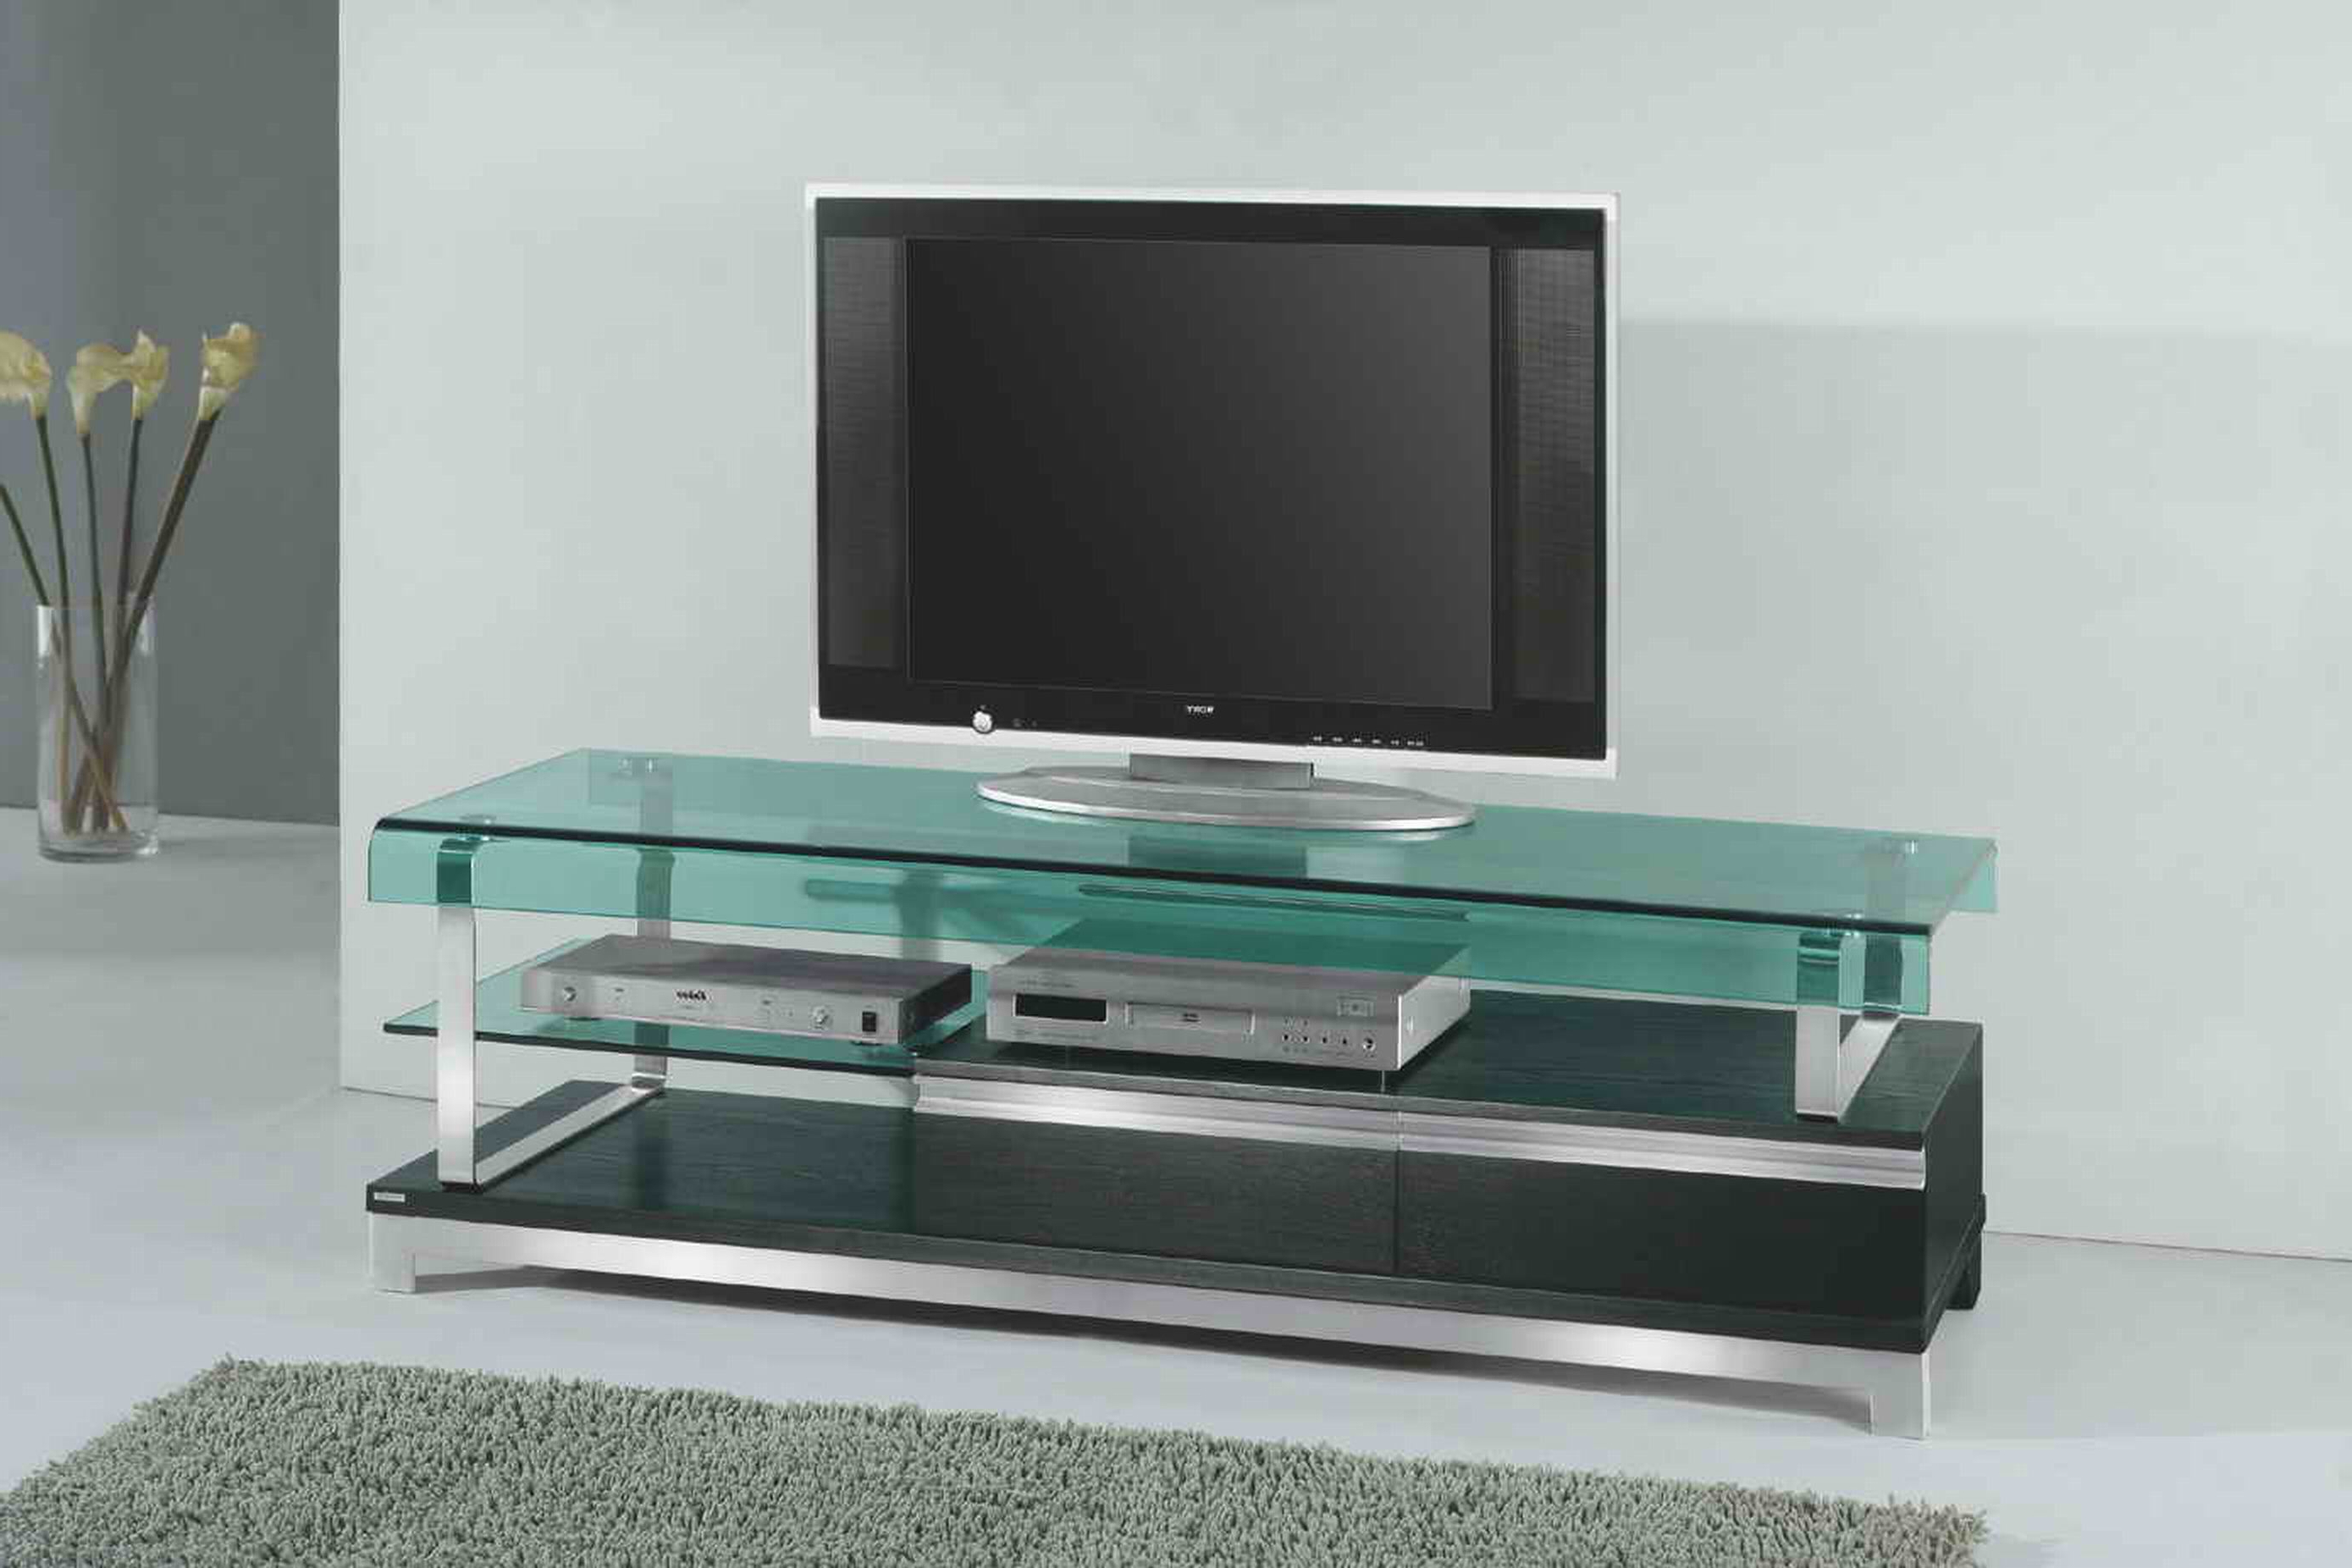 Well Liked Tall Narrow Tv Stands Inside Tall Skinny Tv Stand Narrow Flat Screen Stands For Bedroom Corner (View 8 of 20)